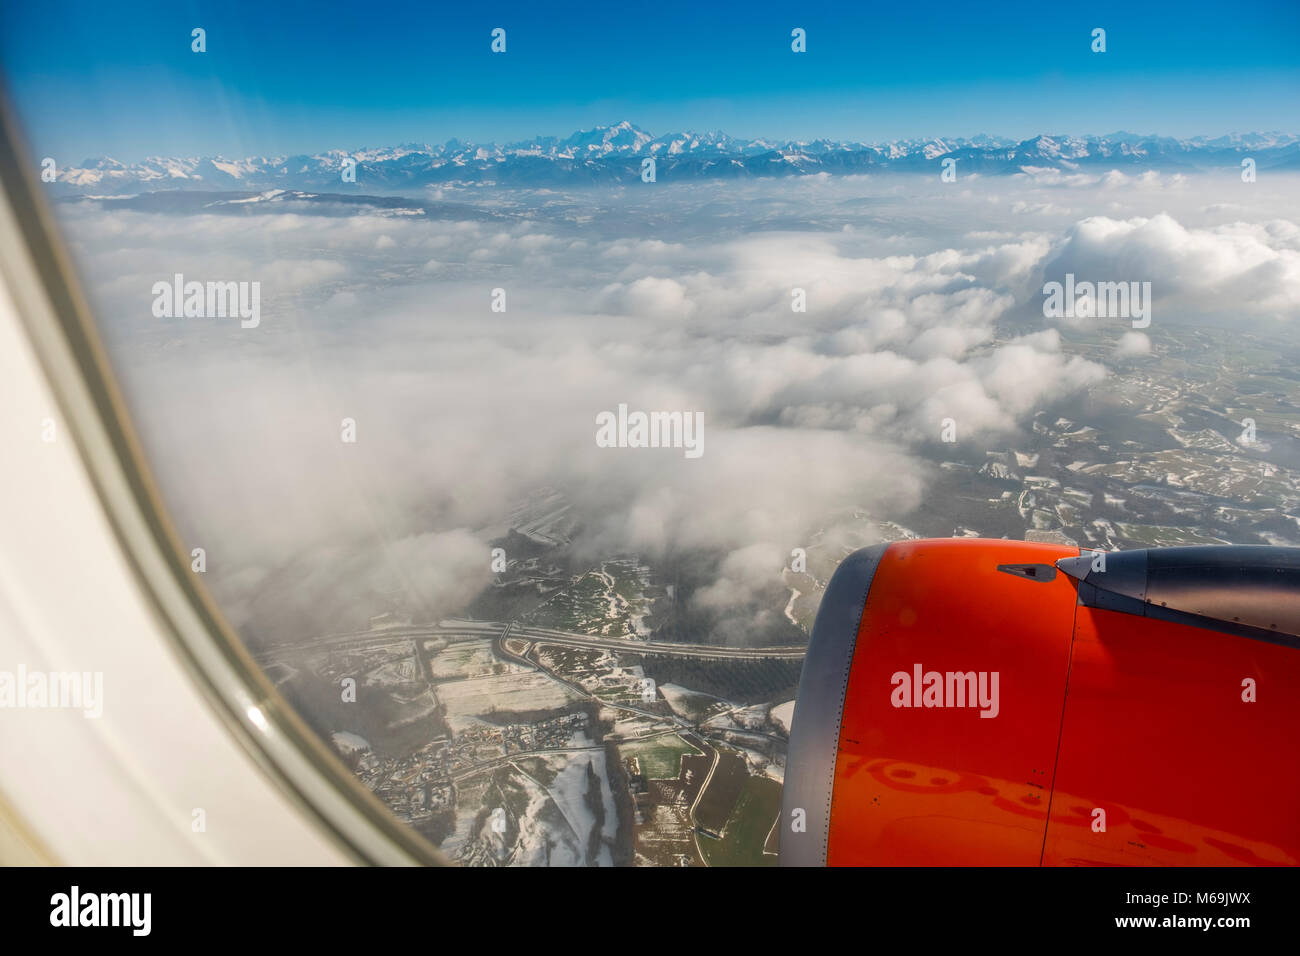 View from a passenger plane, alpine mountain peaks of the Swiss Alps in Switzerland, Europe - Stock Image